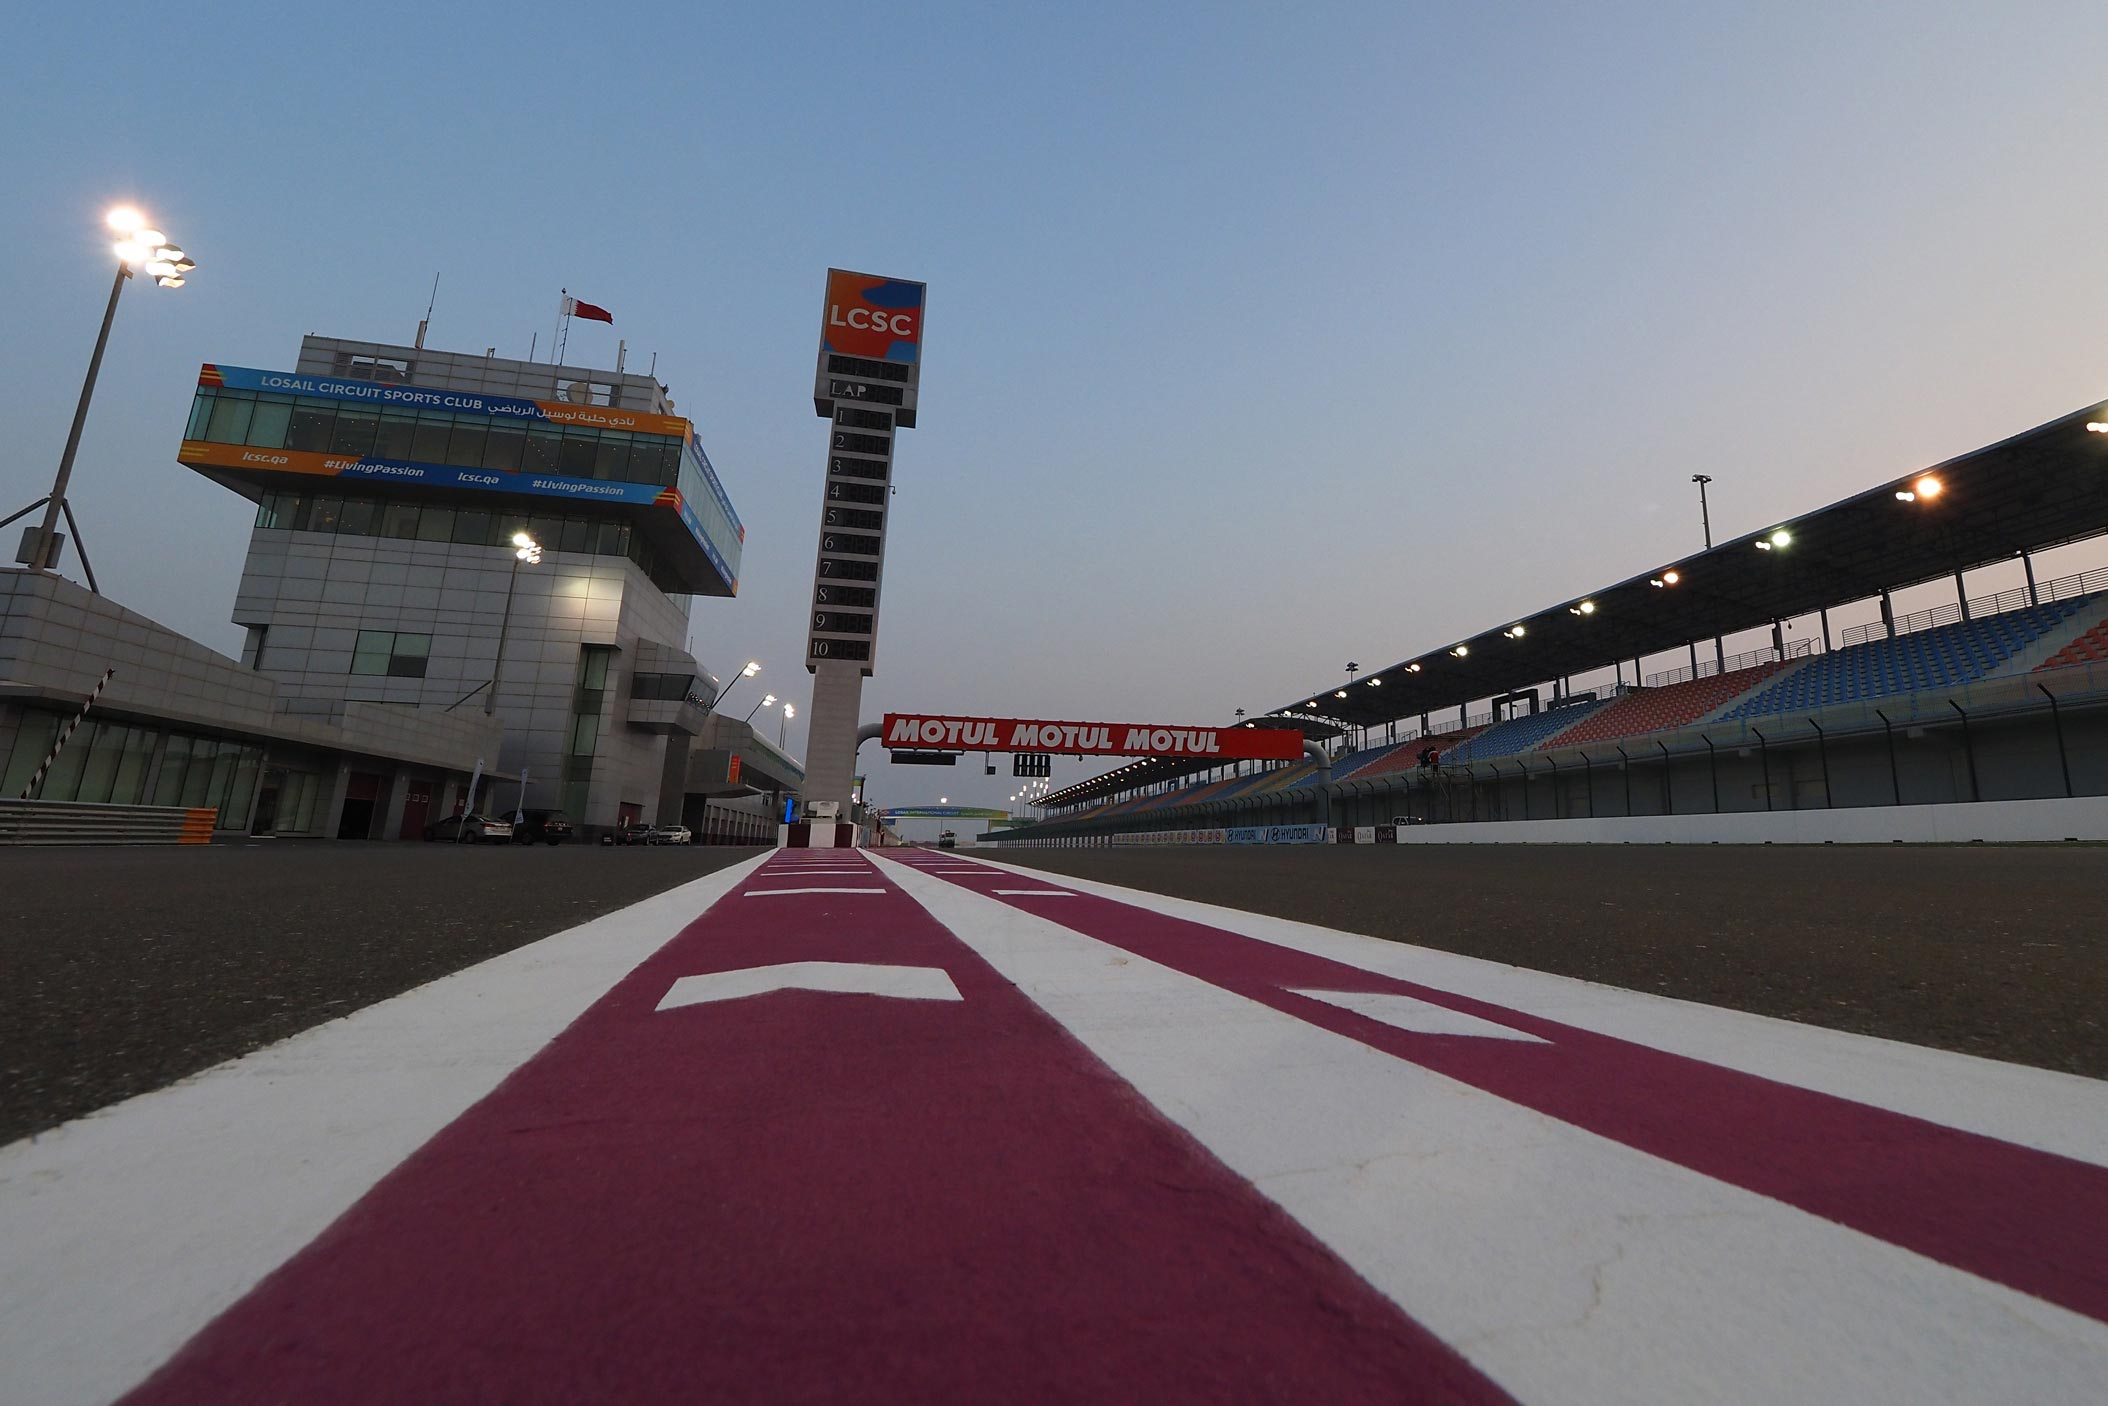 What to Look for at the First Qatar MotoGP Test